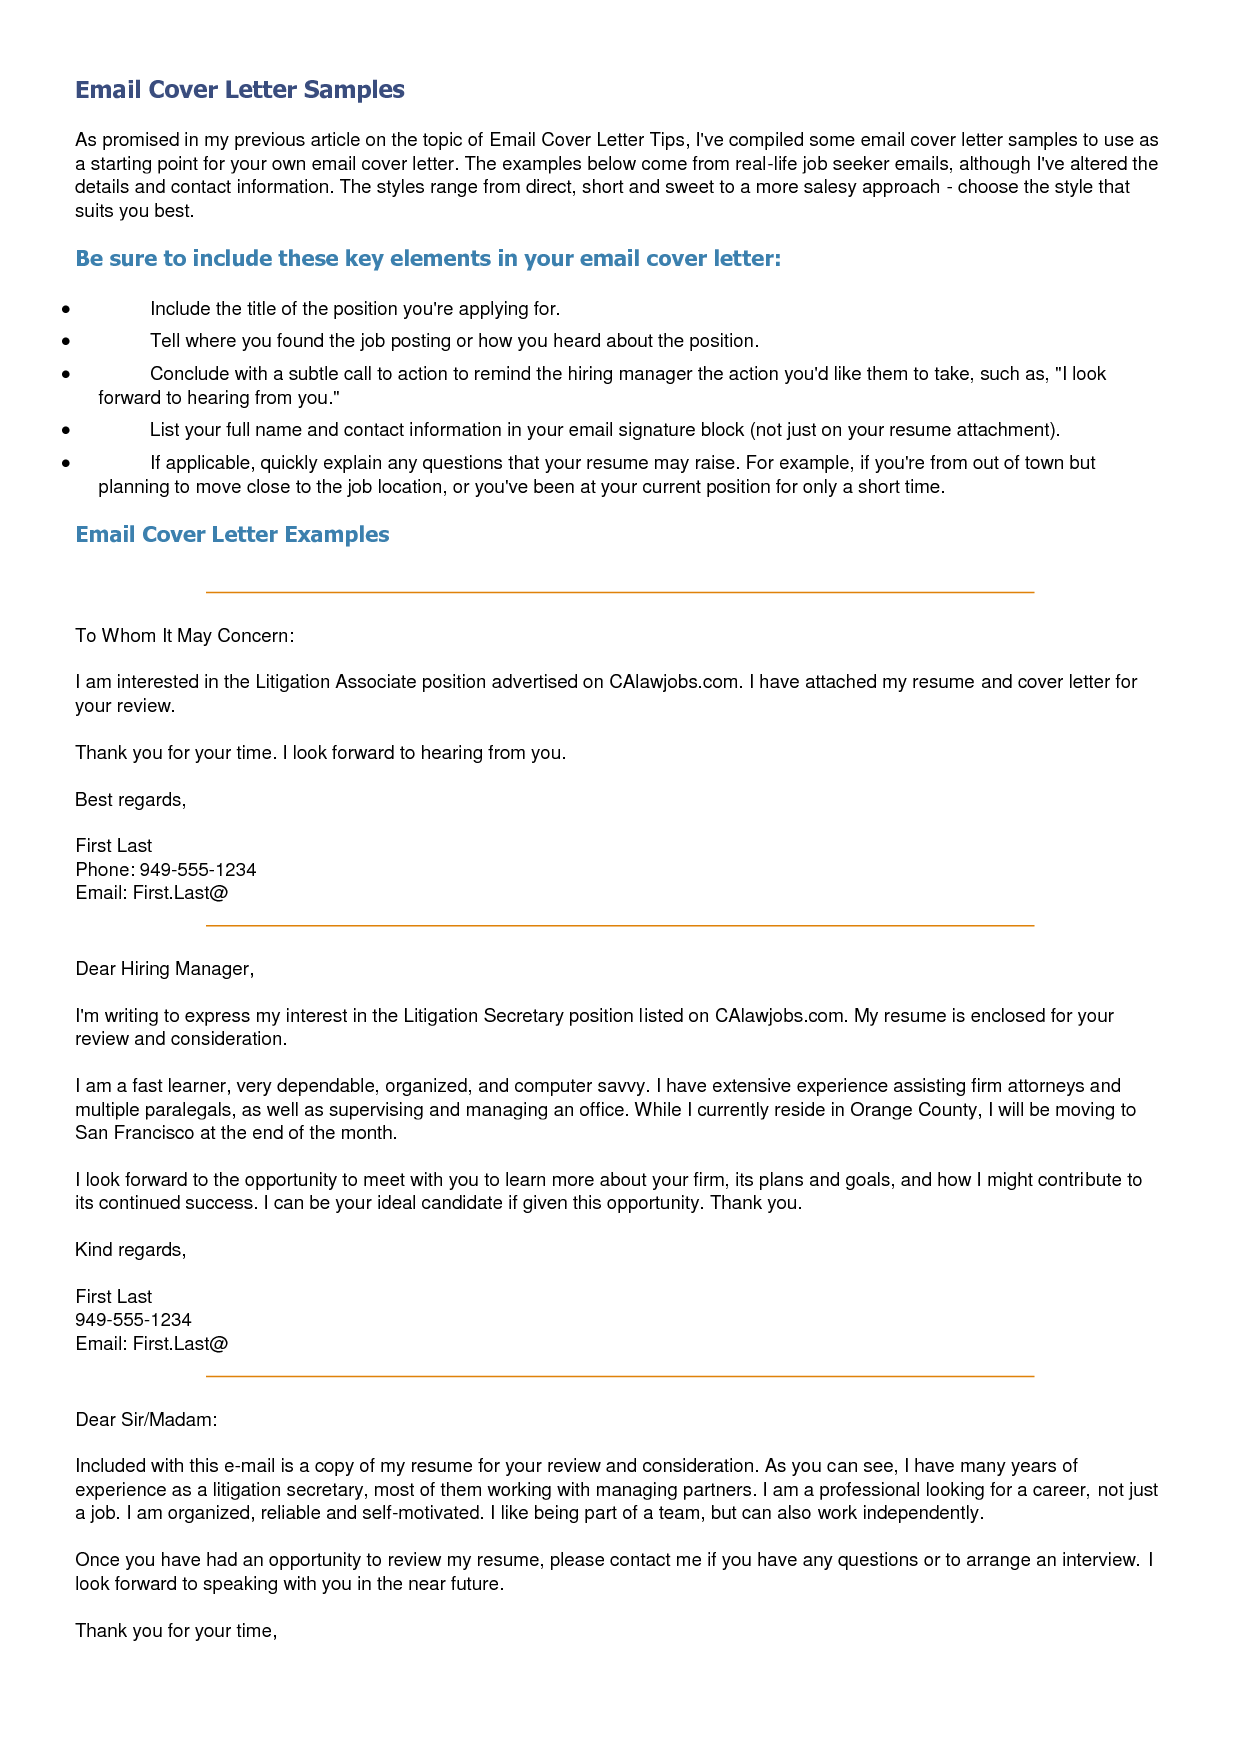 email cover letter sample email cover letter samples - Short Email Cover Letter